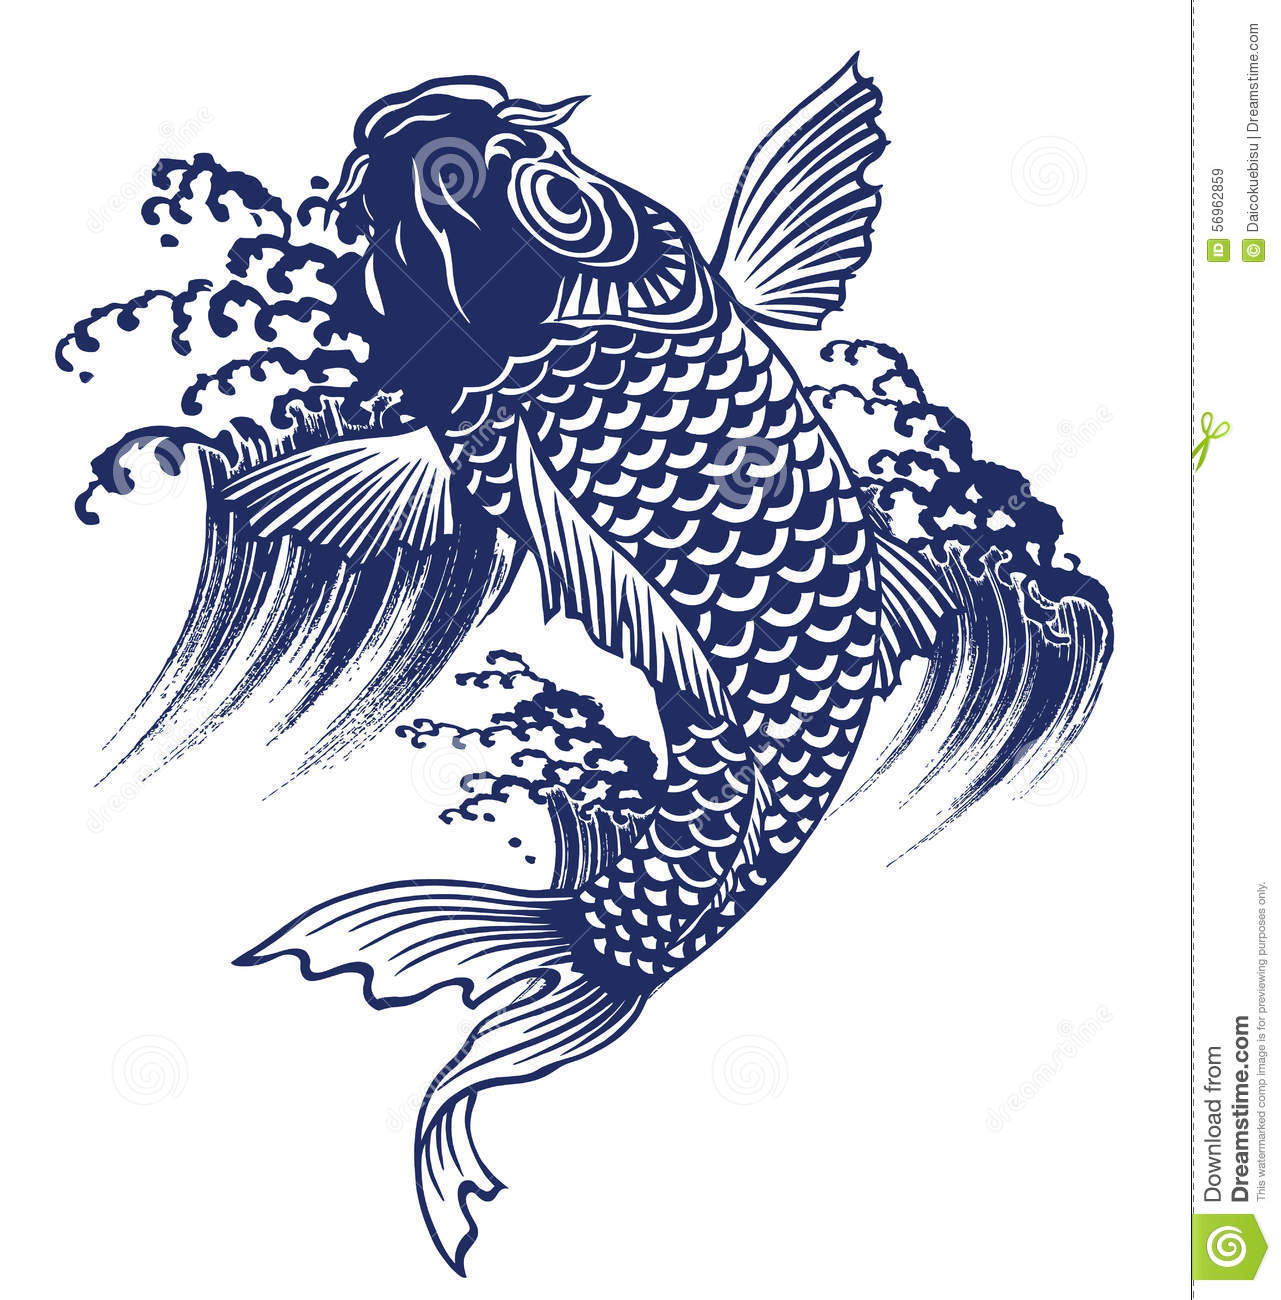 Japanese Carp Stock Illustration - Image: 56962859